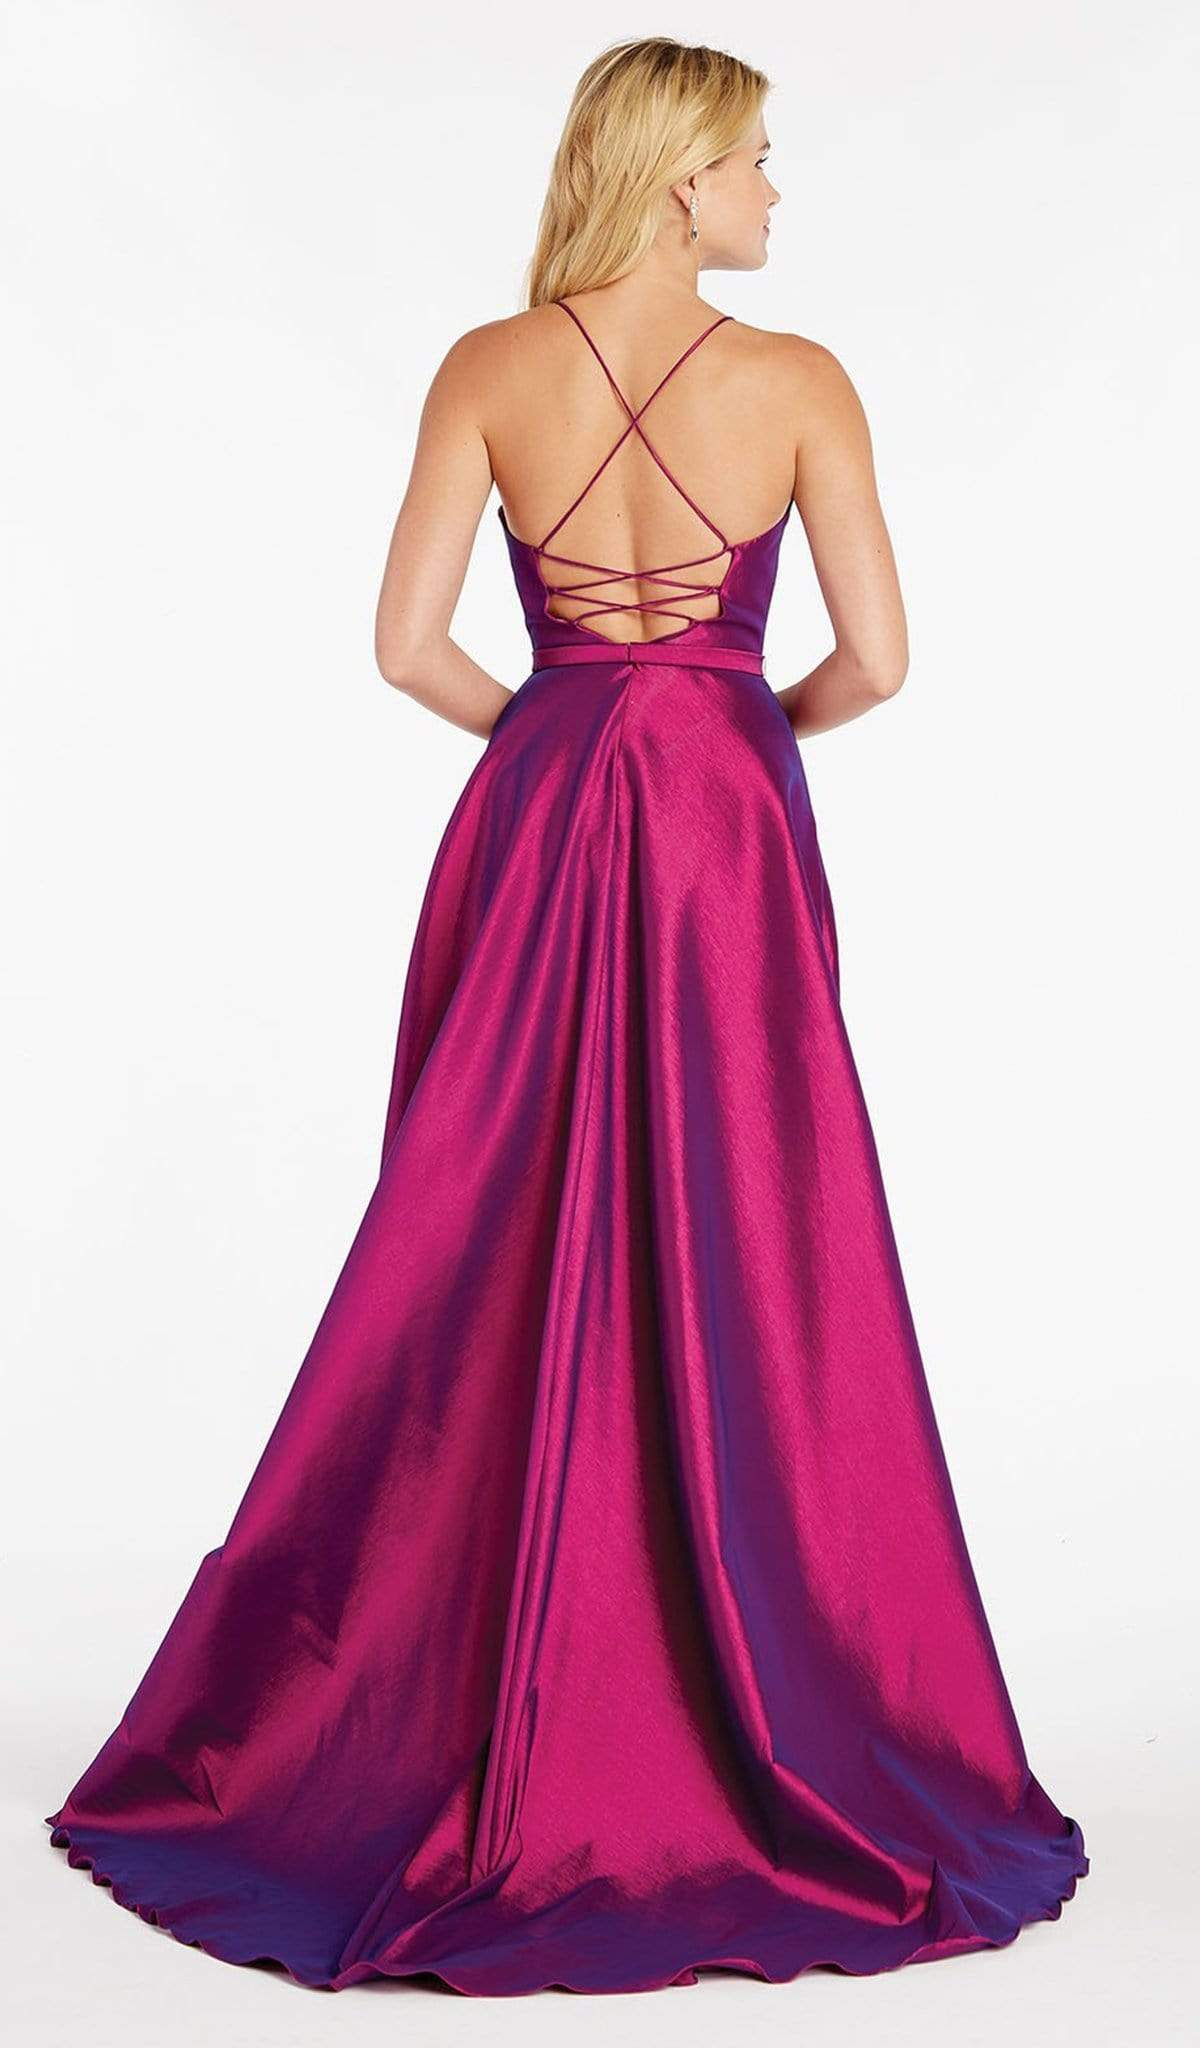 Alyce Paris - 60394 Illusion Plunging Neck High-Low Taffeta Prom Dress Special Occasion Dress